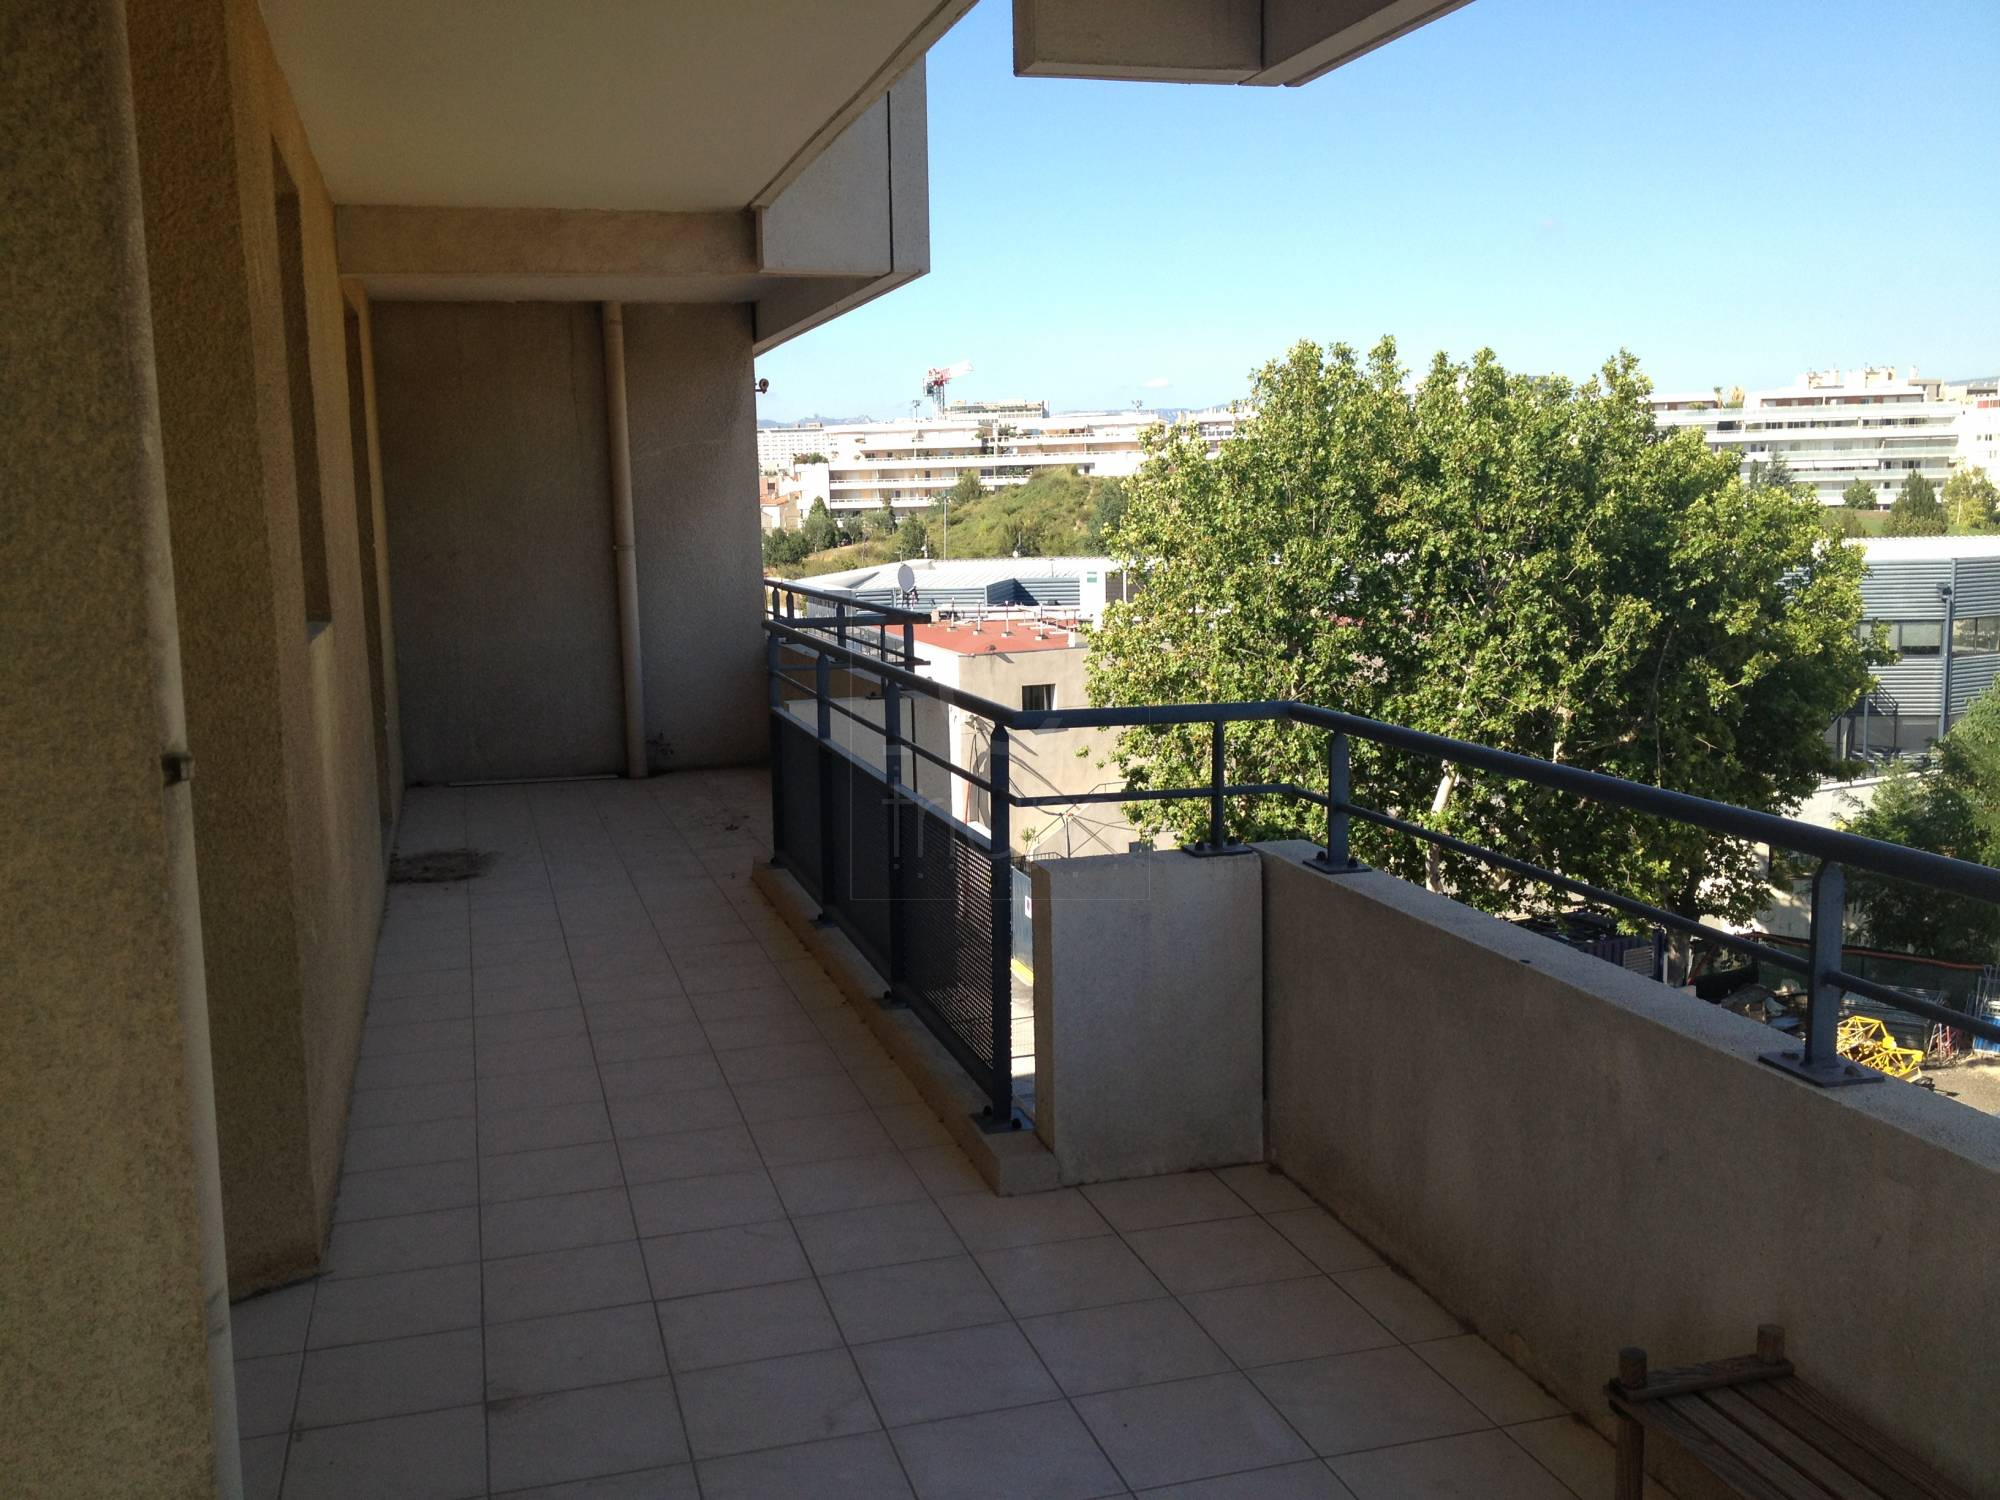 Location appartement t2 f2 marseille 8eme prado rouet for Location appartement bordeaux pellegrin t2